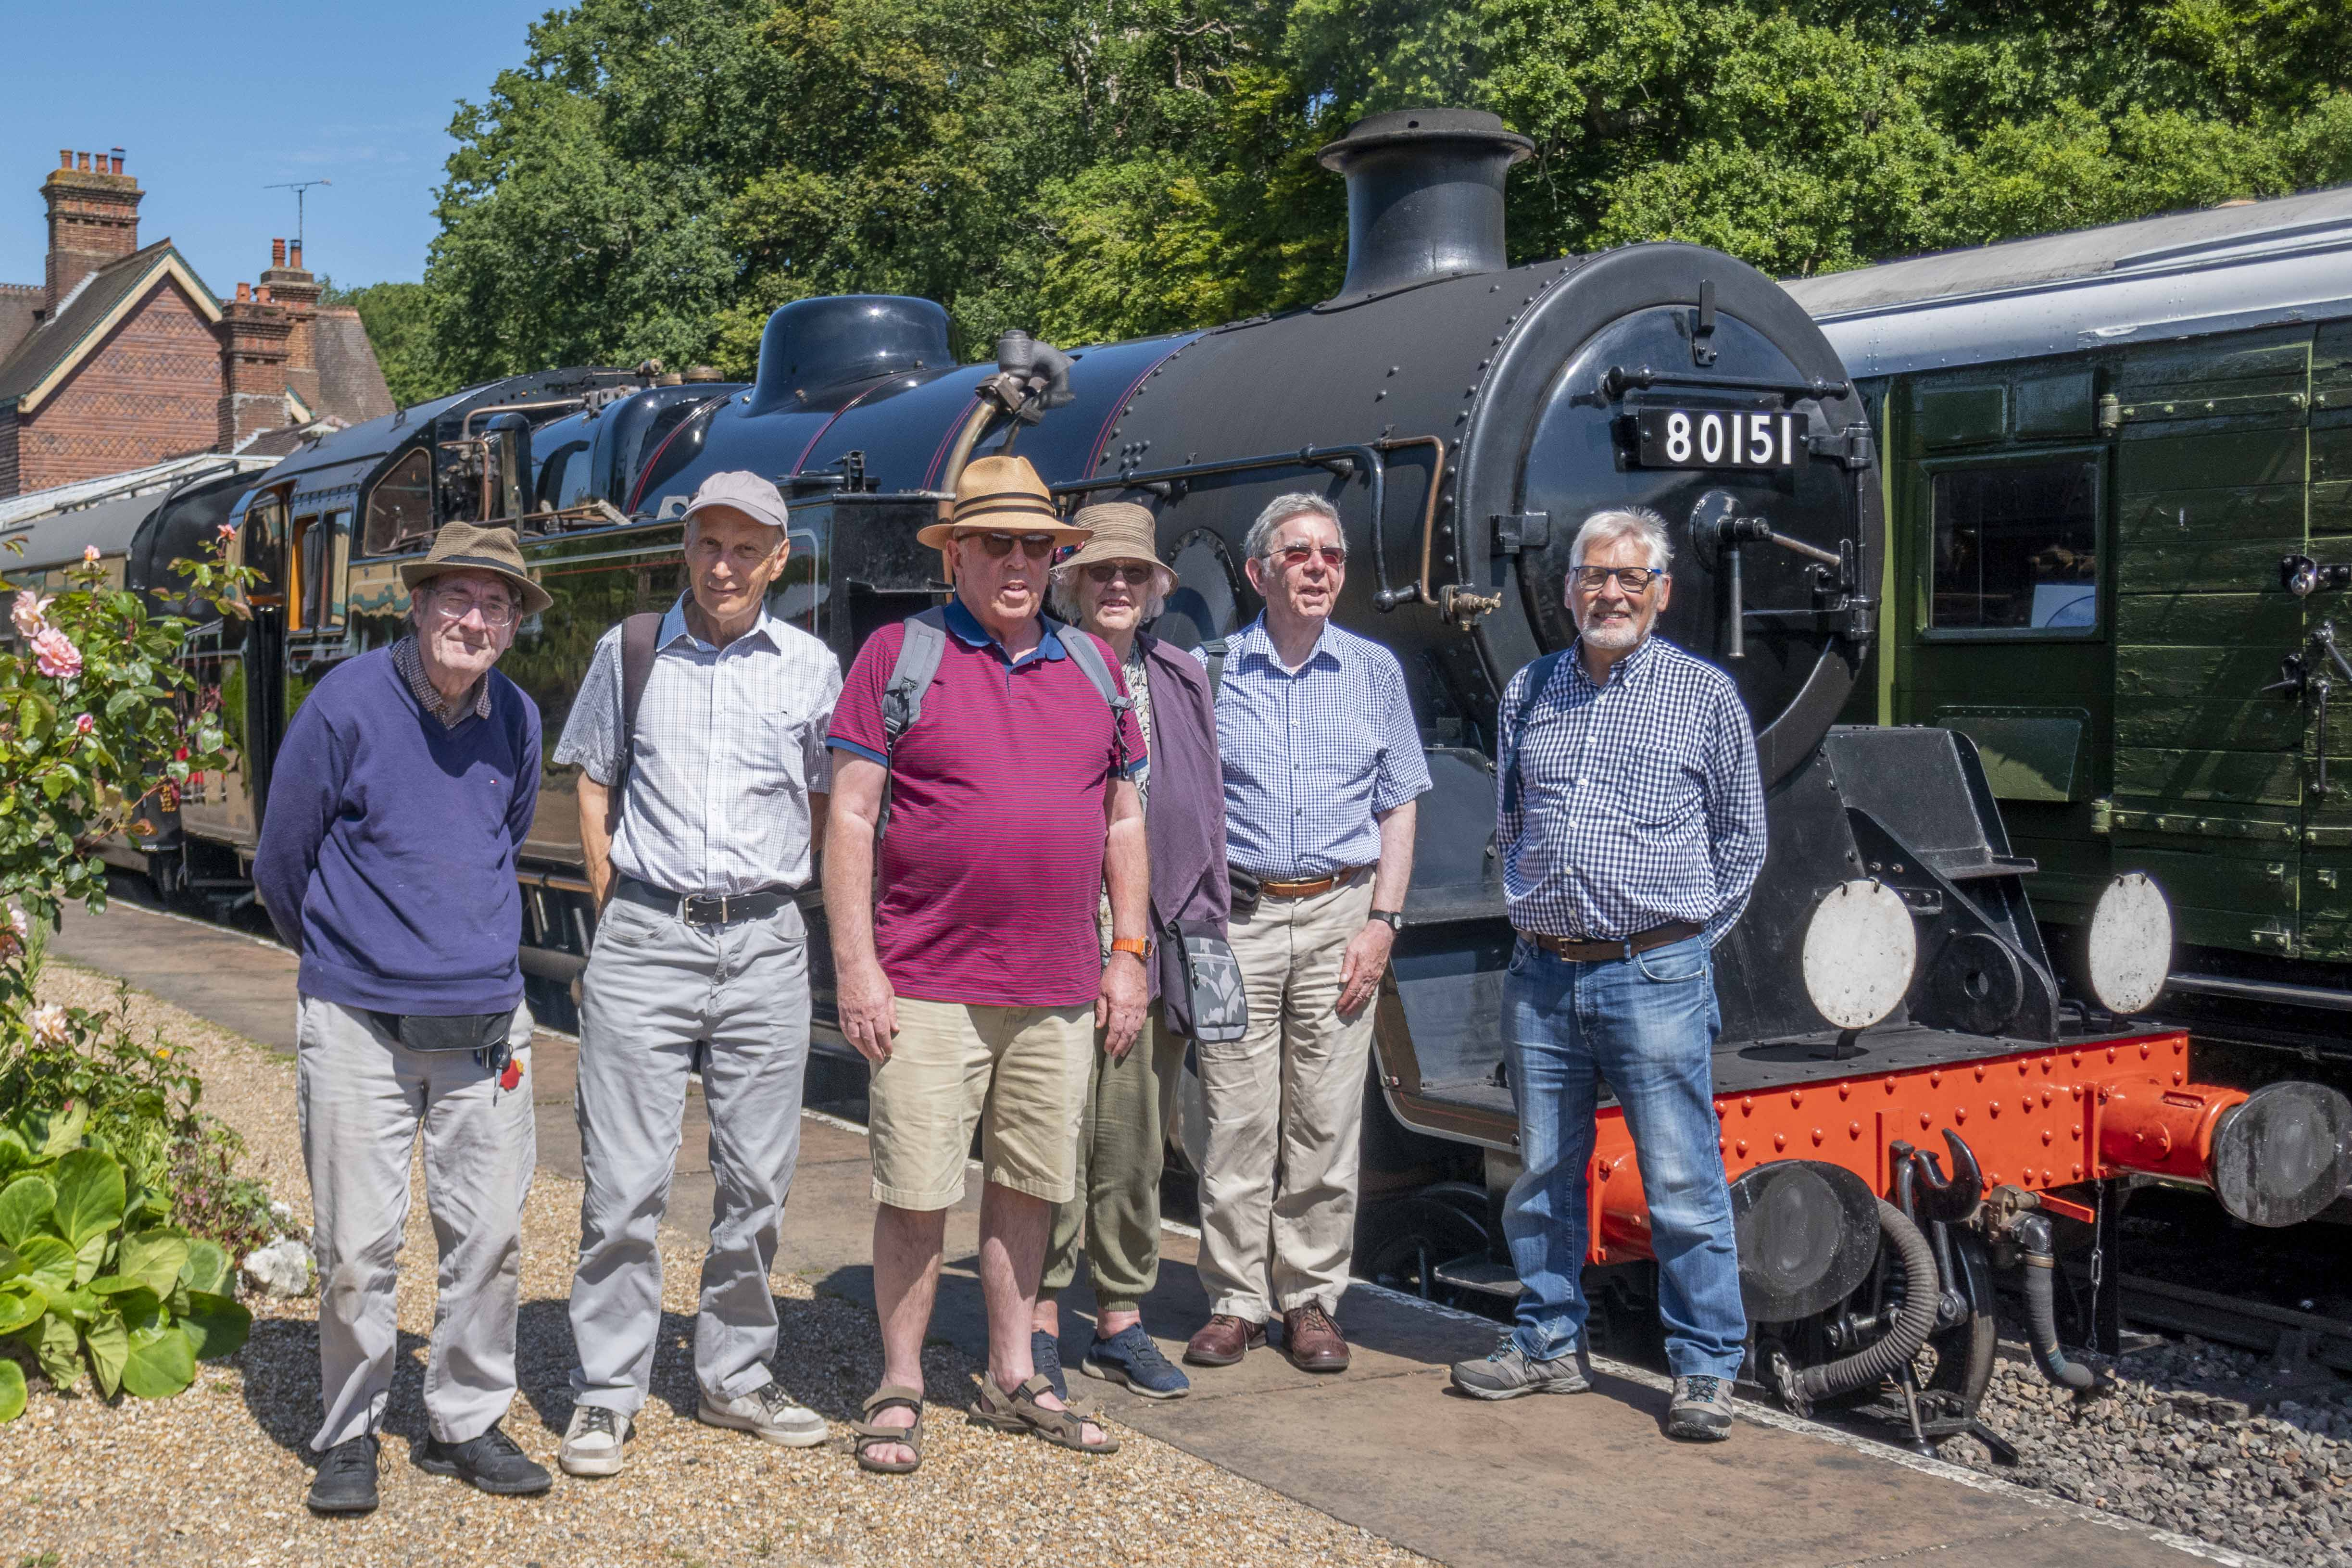 Railway Group Visit to the Bluebell Line